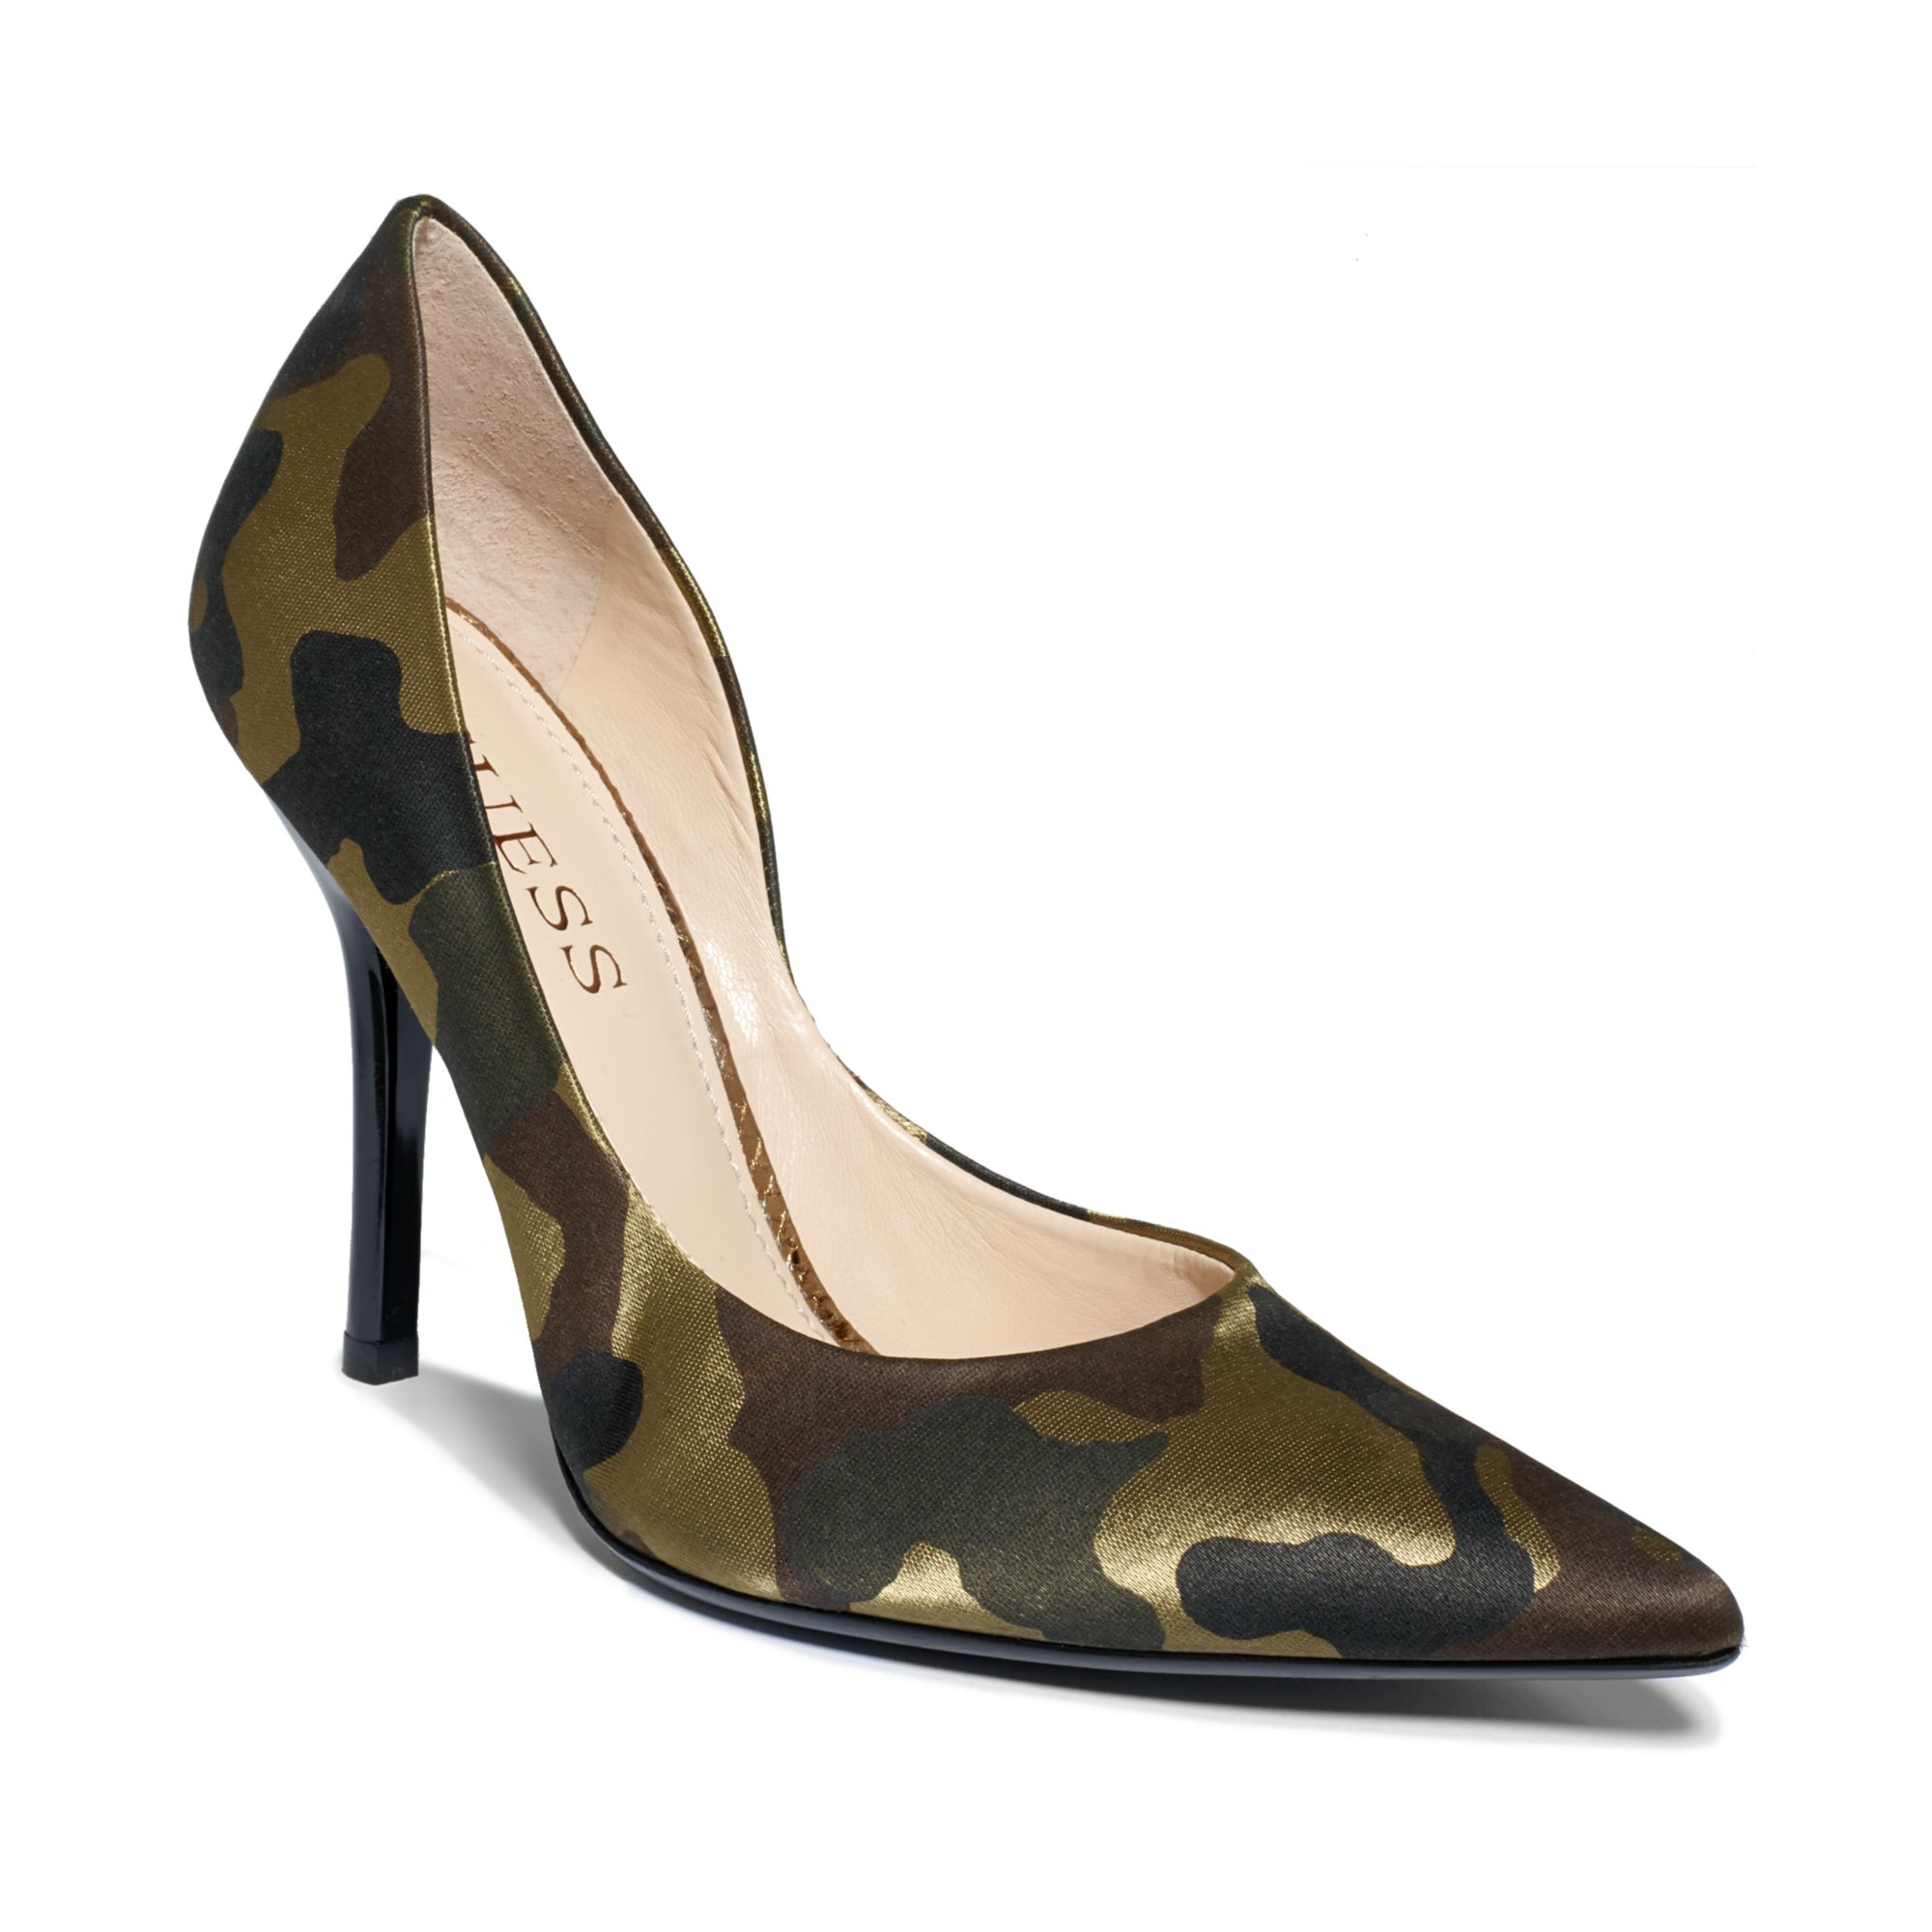 Lyst Guess Womens Shoes Carrie Pumps In Green